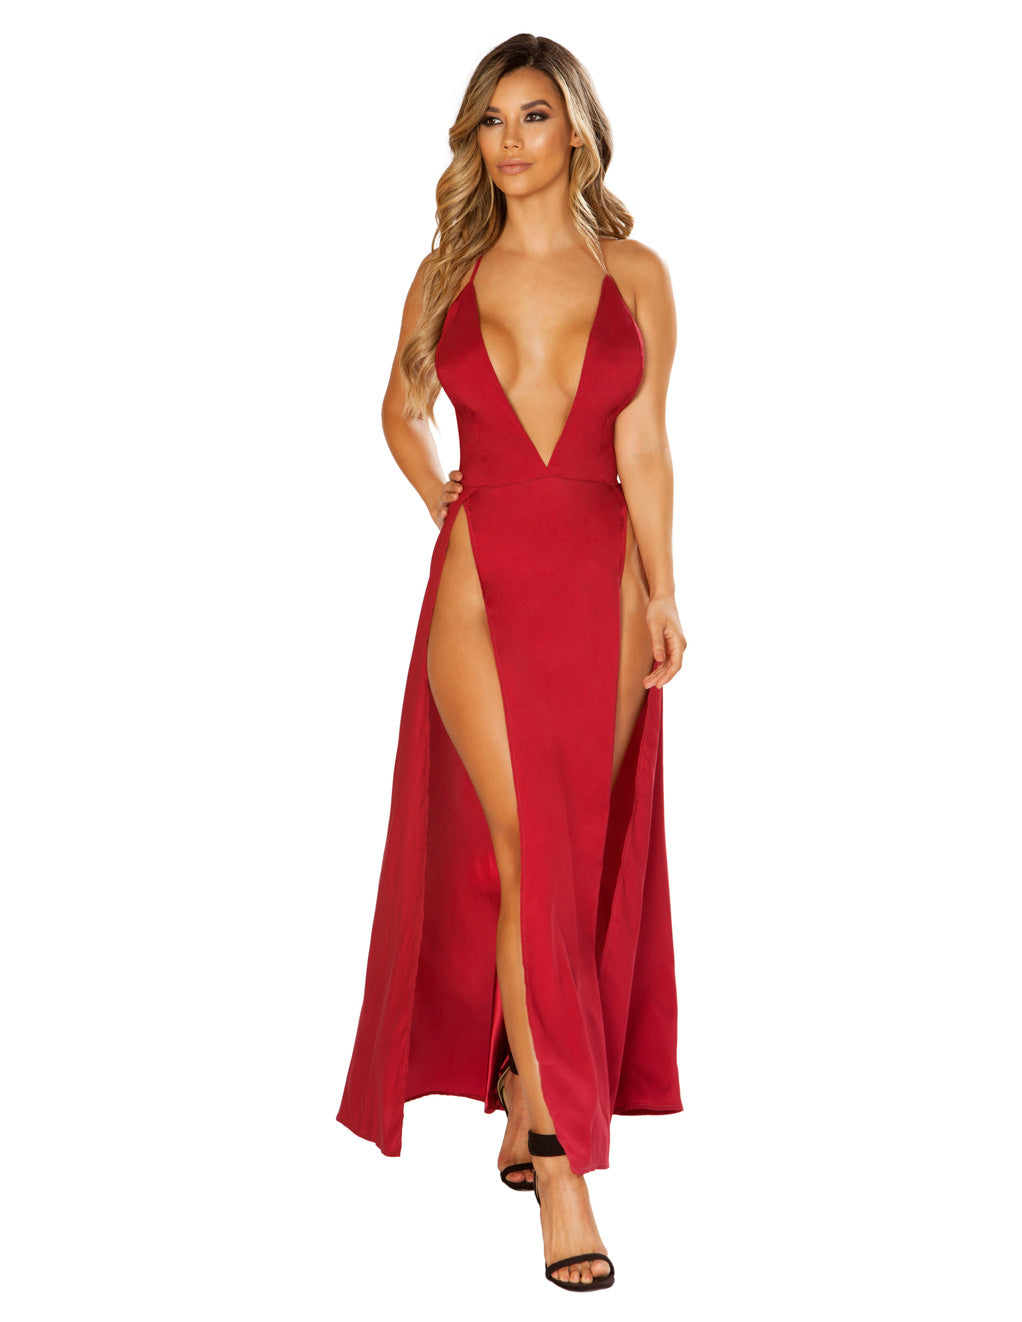 Roma Costume Maxi Length Satin Dress with High Slits And Deep V